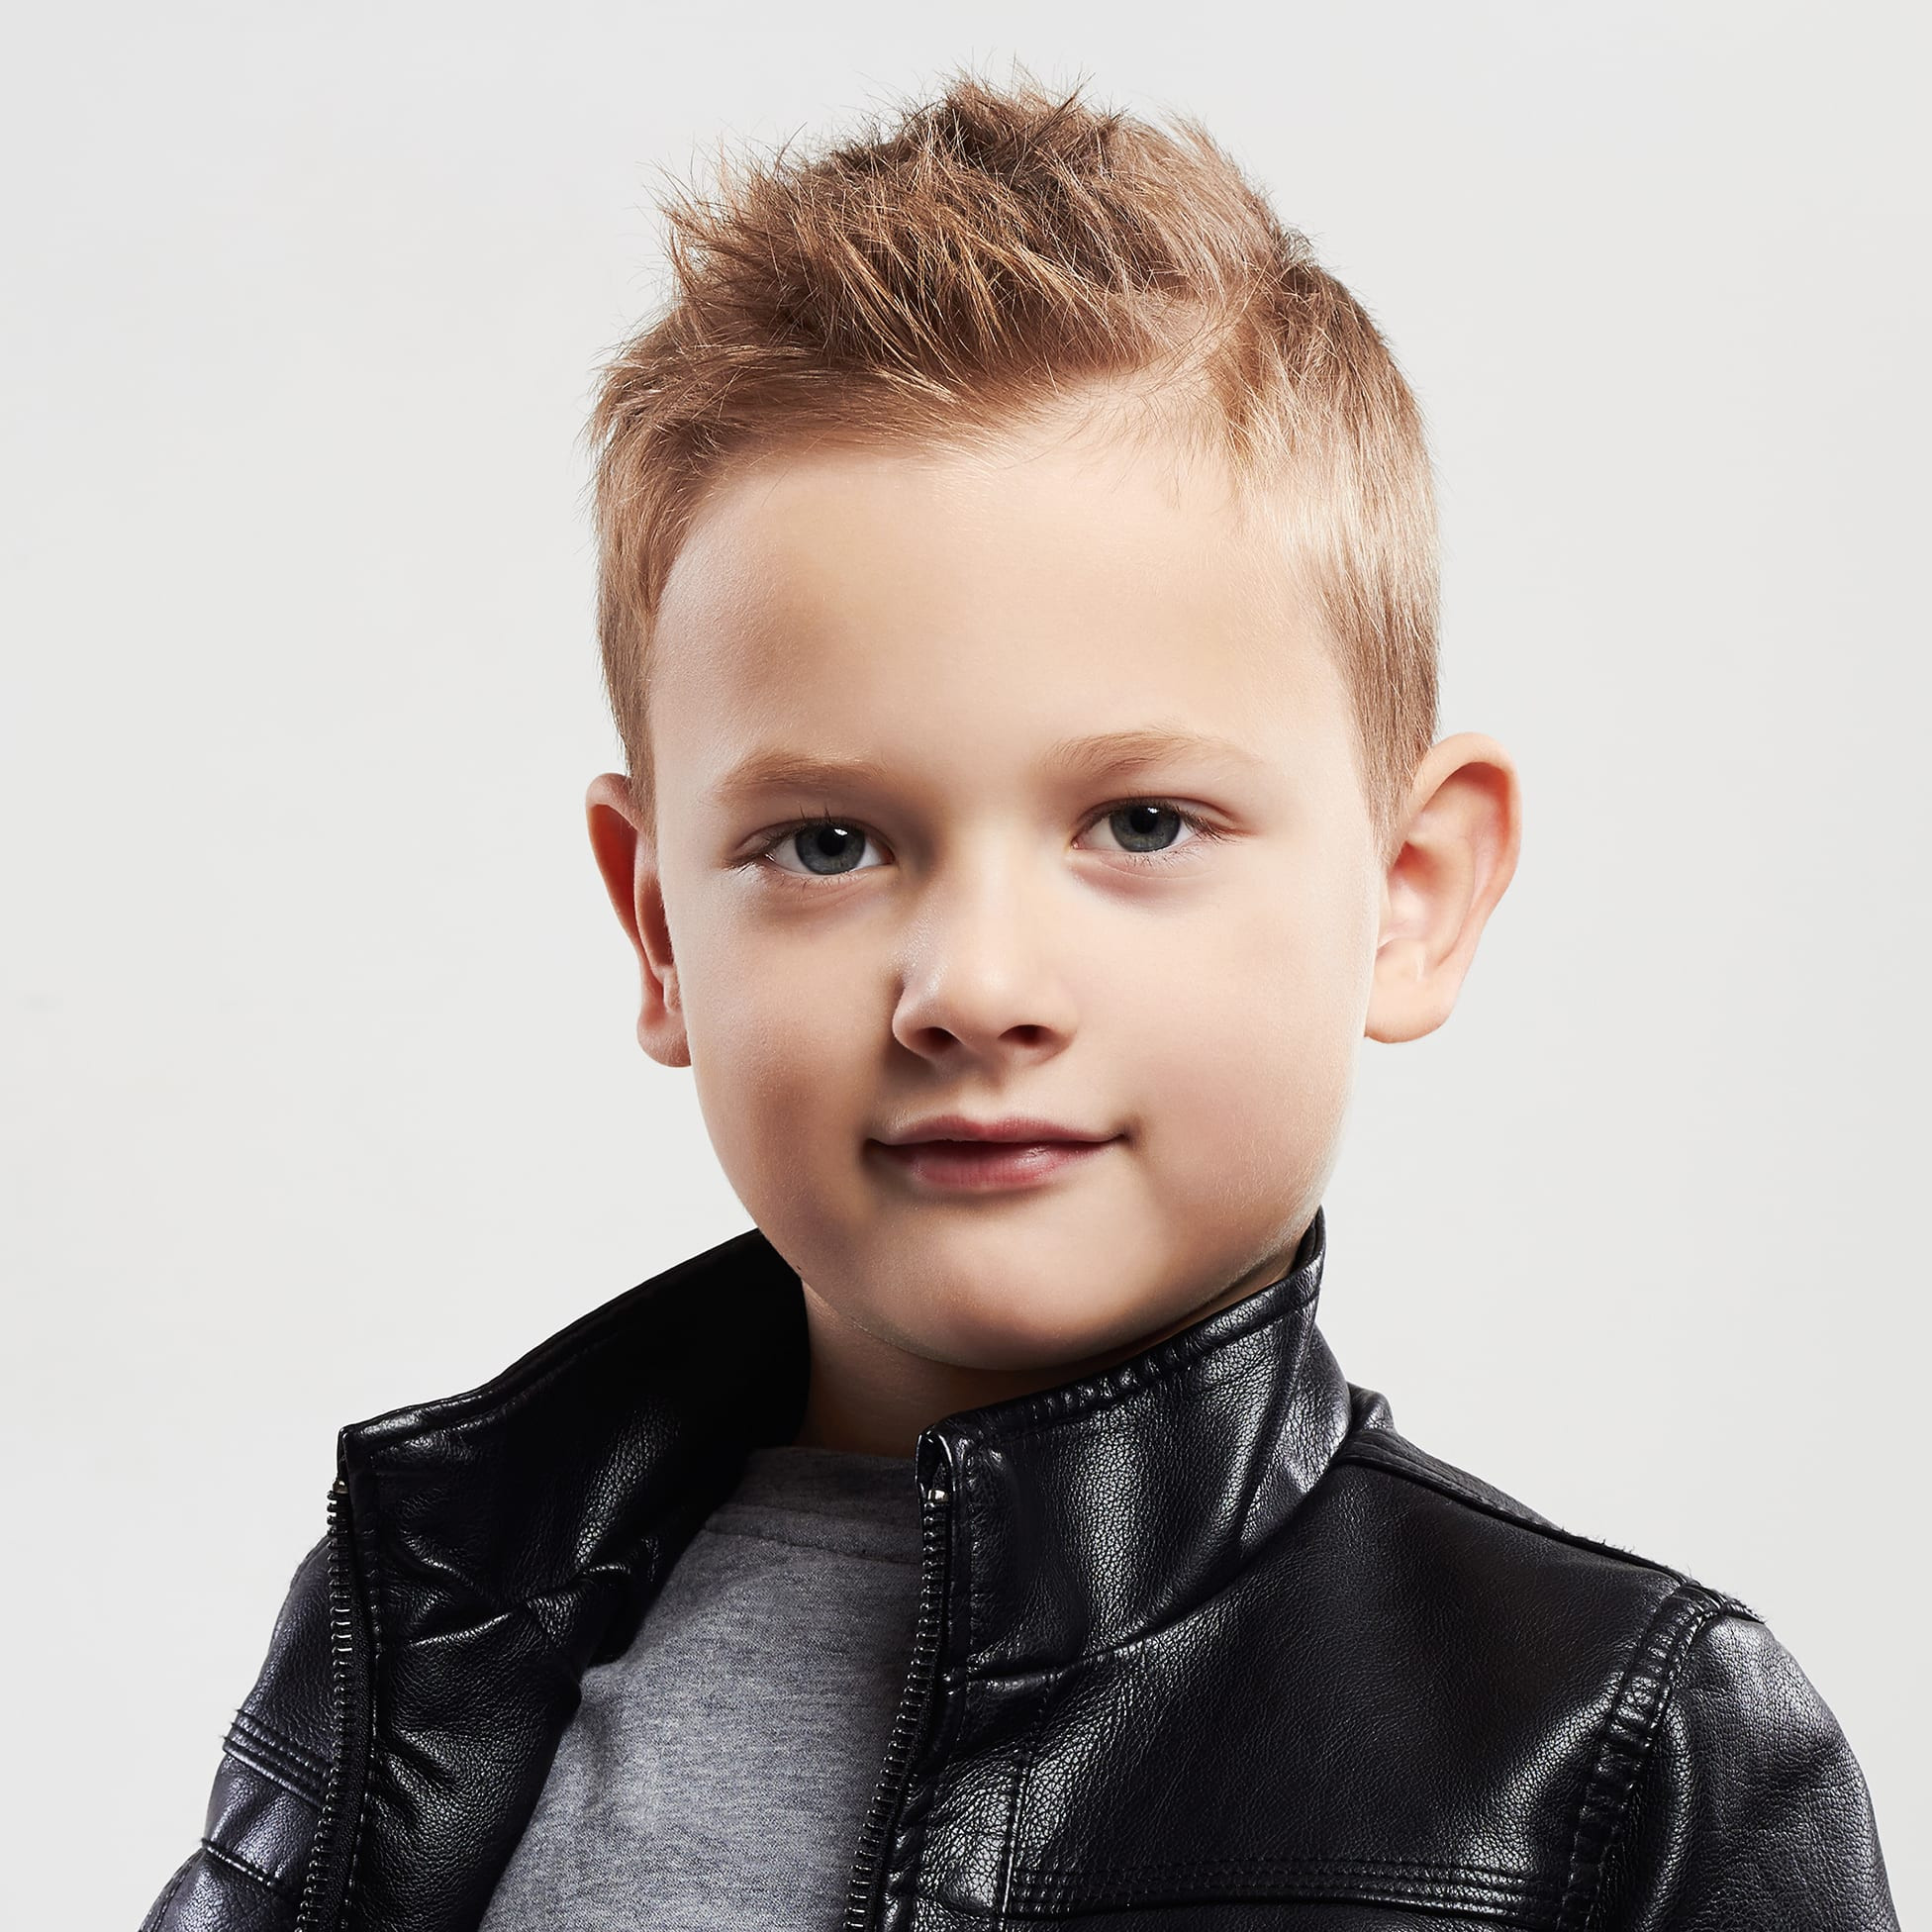 Best ideas about Boys Hair Cut 2019 . Save or Pin 35 Cute Toddler Boy Haircuts Your Kids will Love Now.